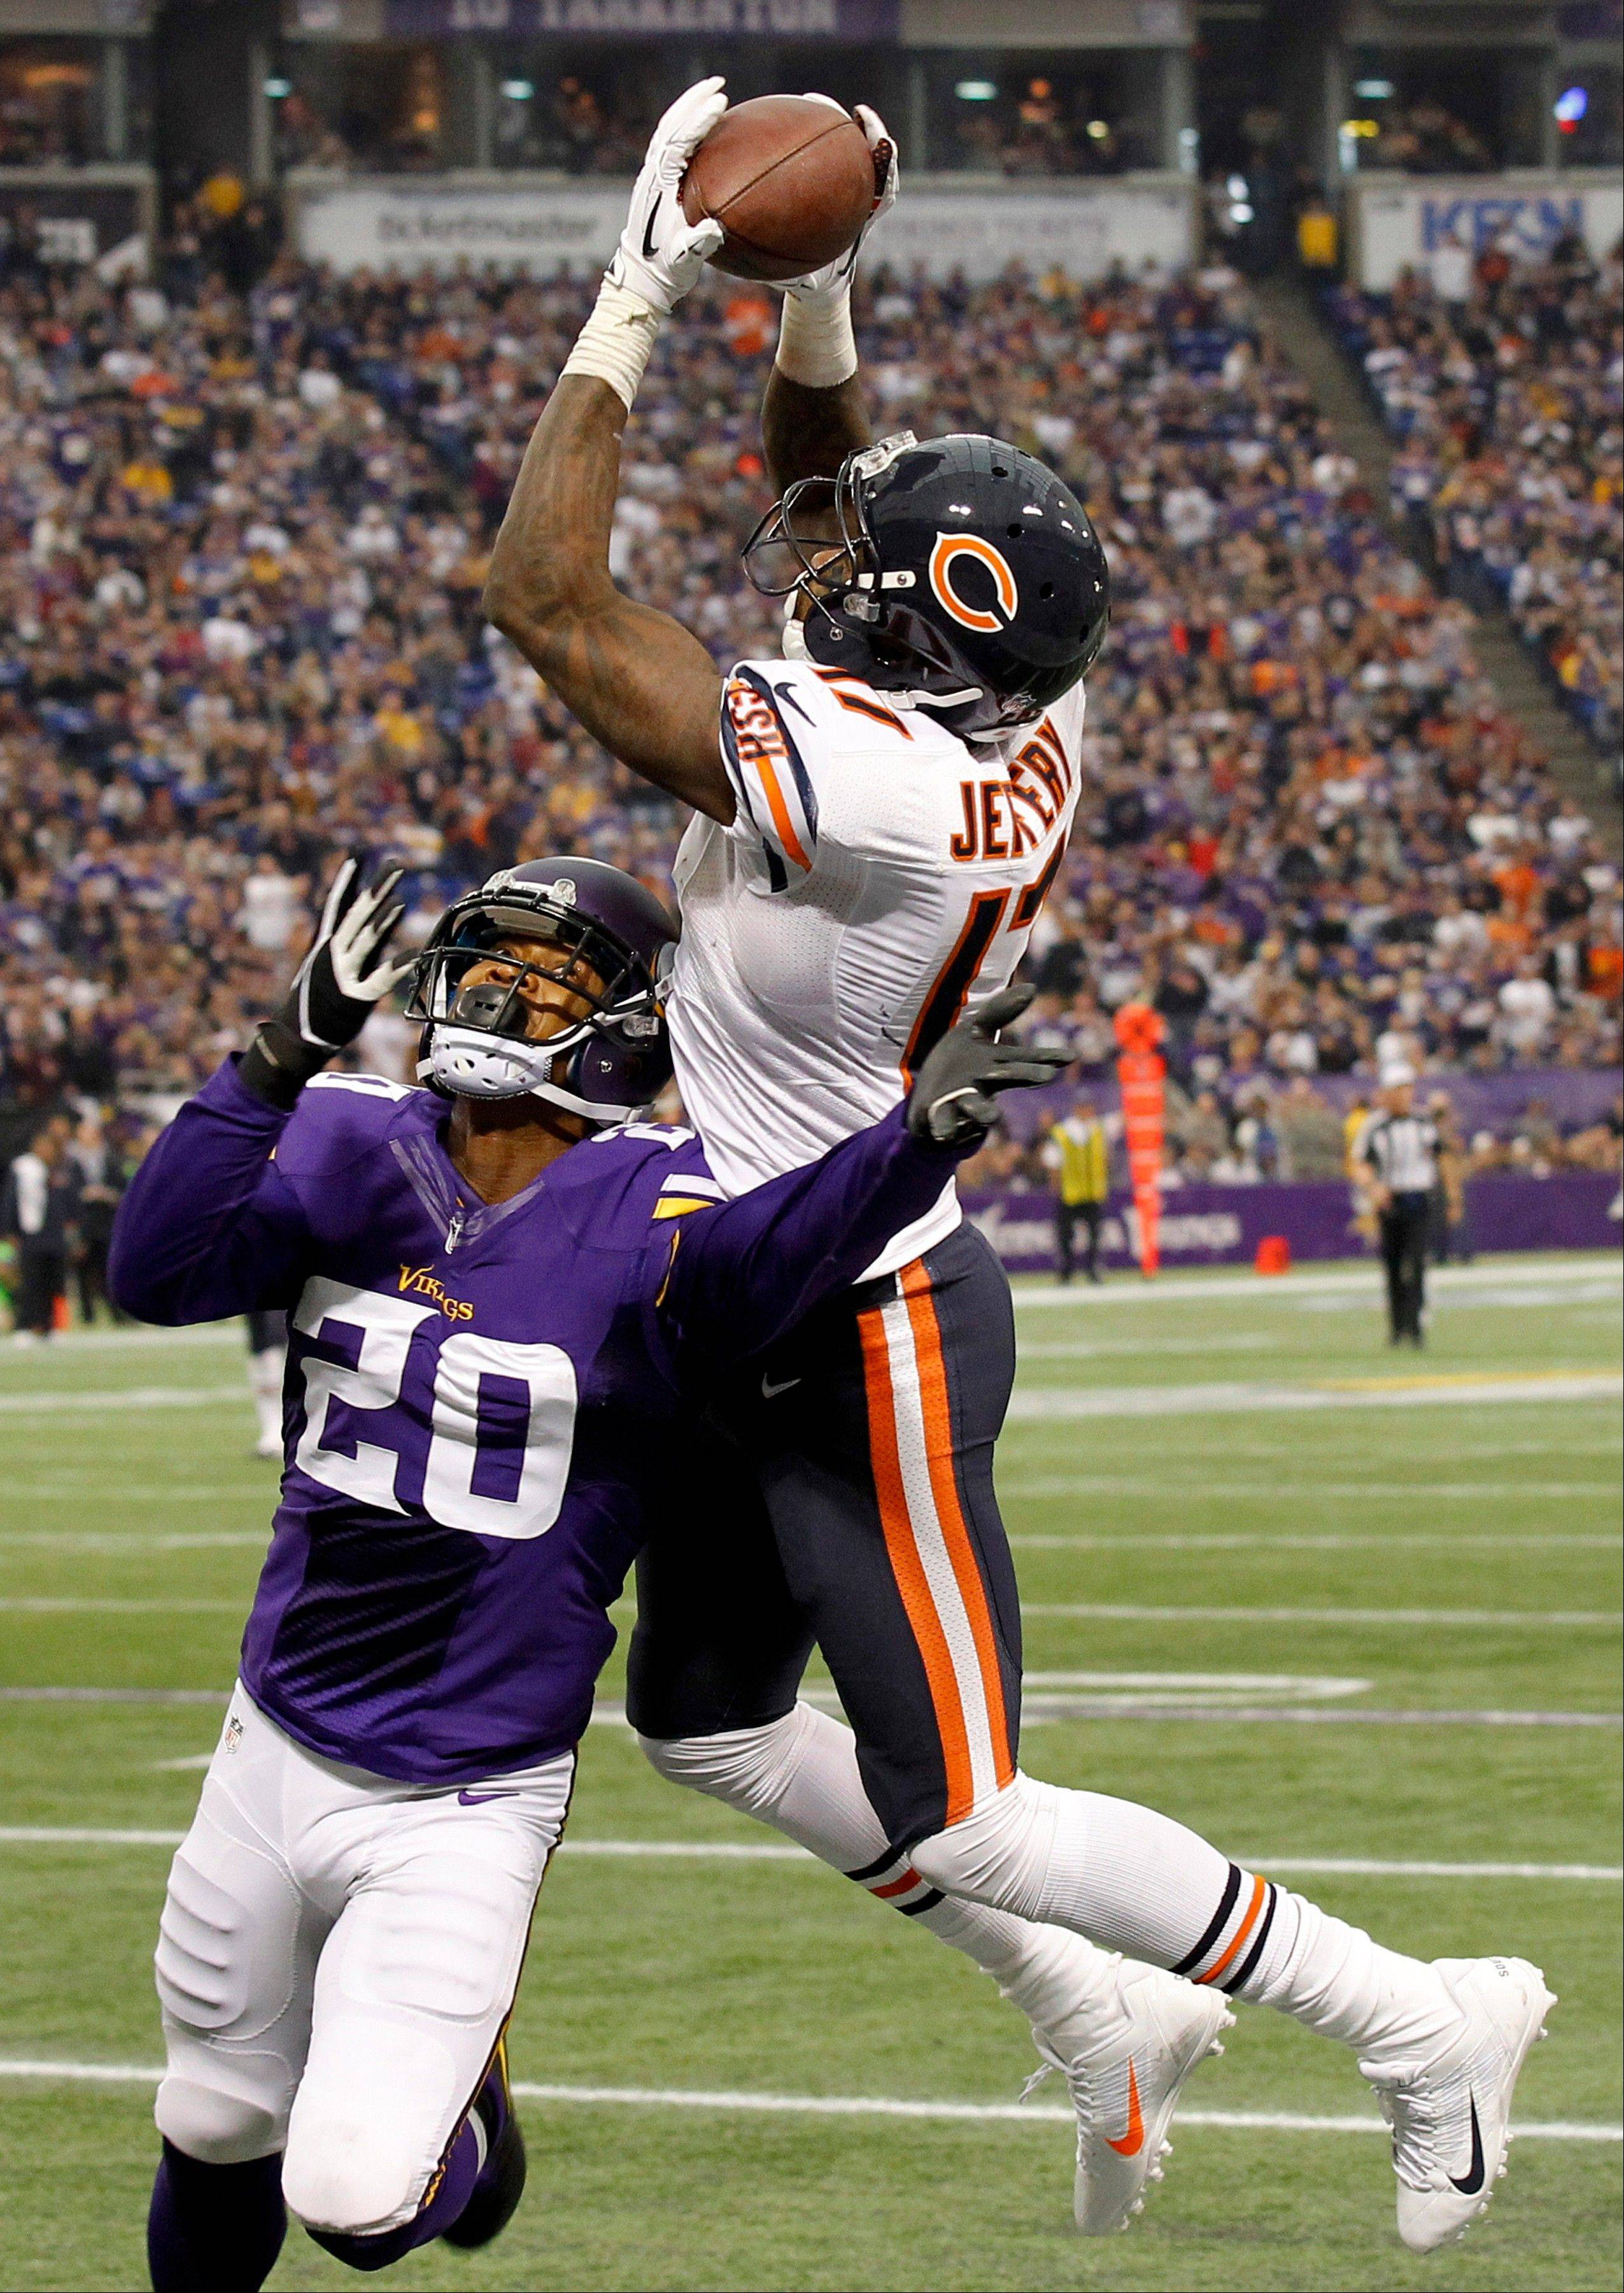 Bears wide receiver Alshon Jeffery catches a 46-yard touchdown pass over Minnesota Vikings cornerback Chris Cook during the second half of yesterday's game in Minneapolis. Jeffery was a highlight of the game; the game's ending was not.